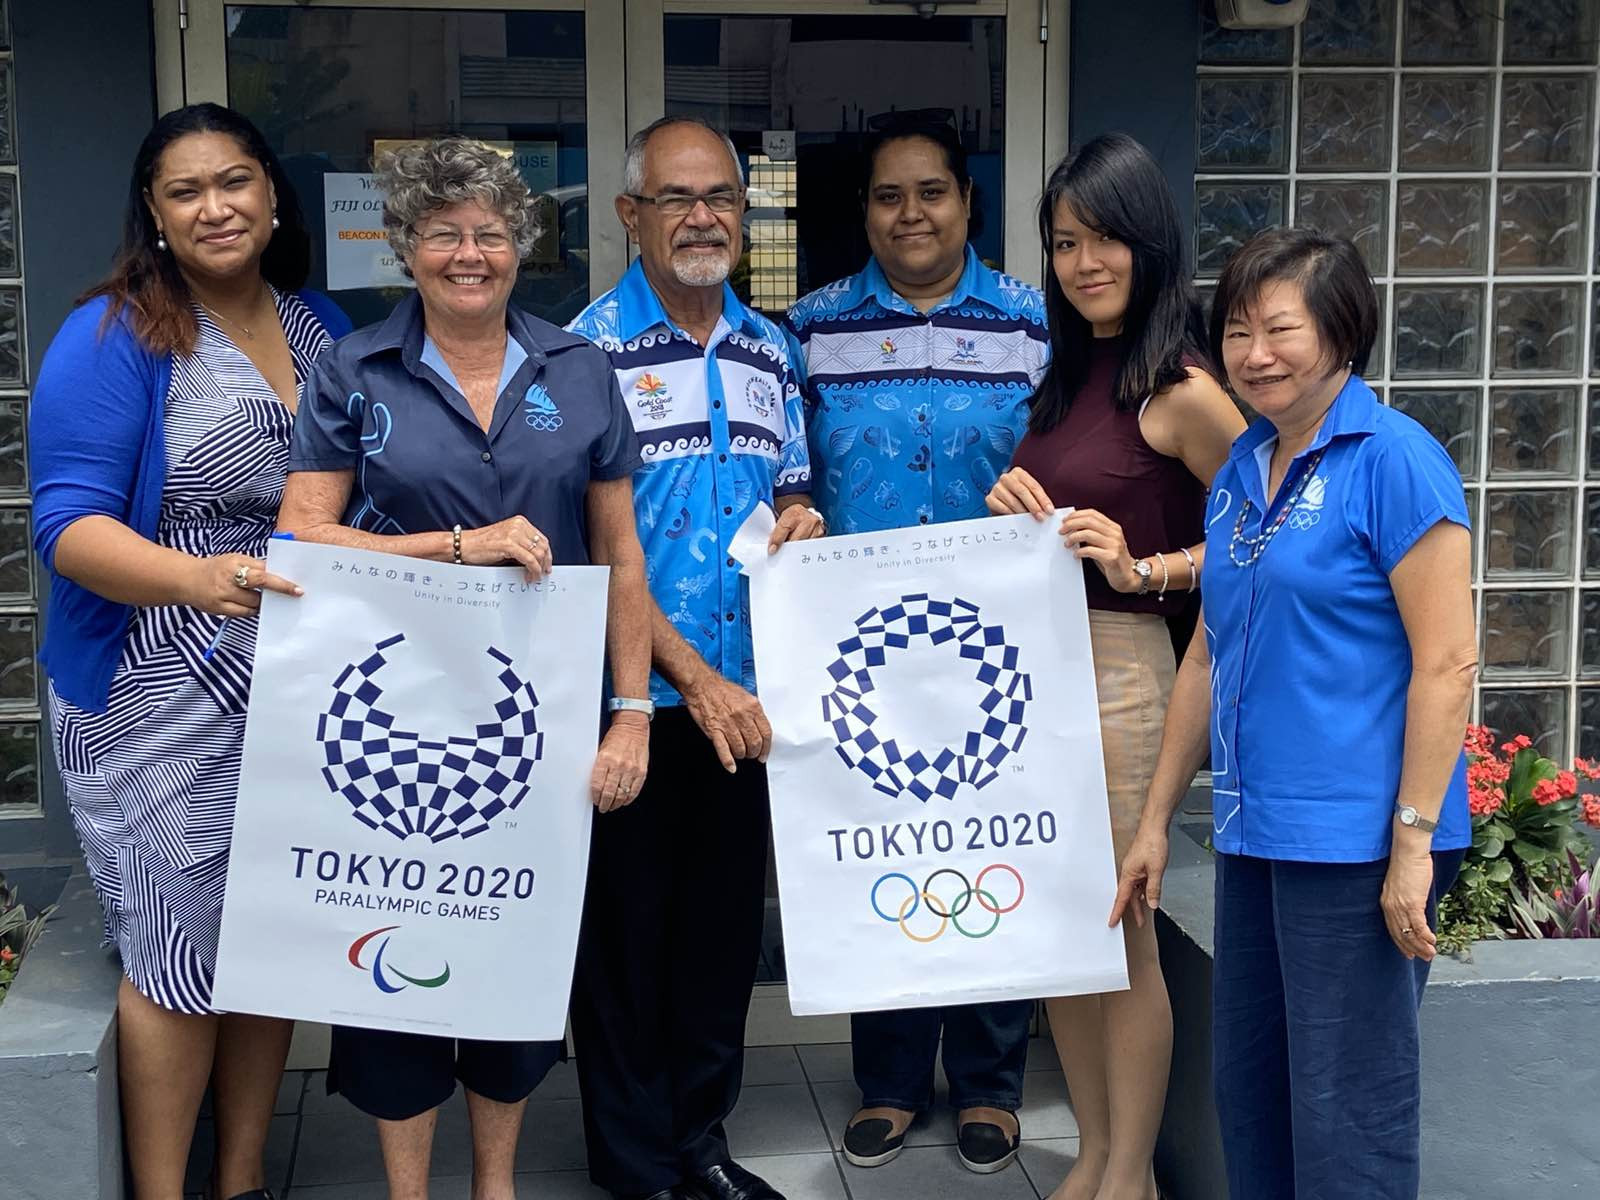 FASANOC hoping to send up to 50 athletes to Tokyo 2020